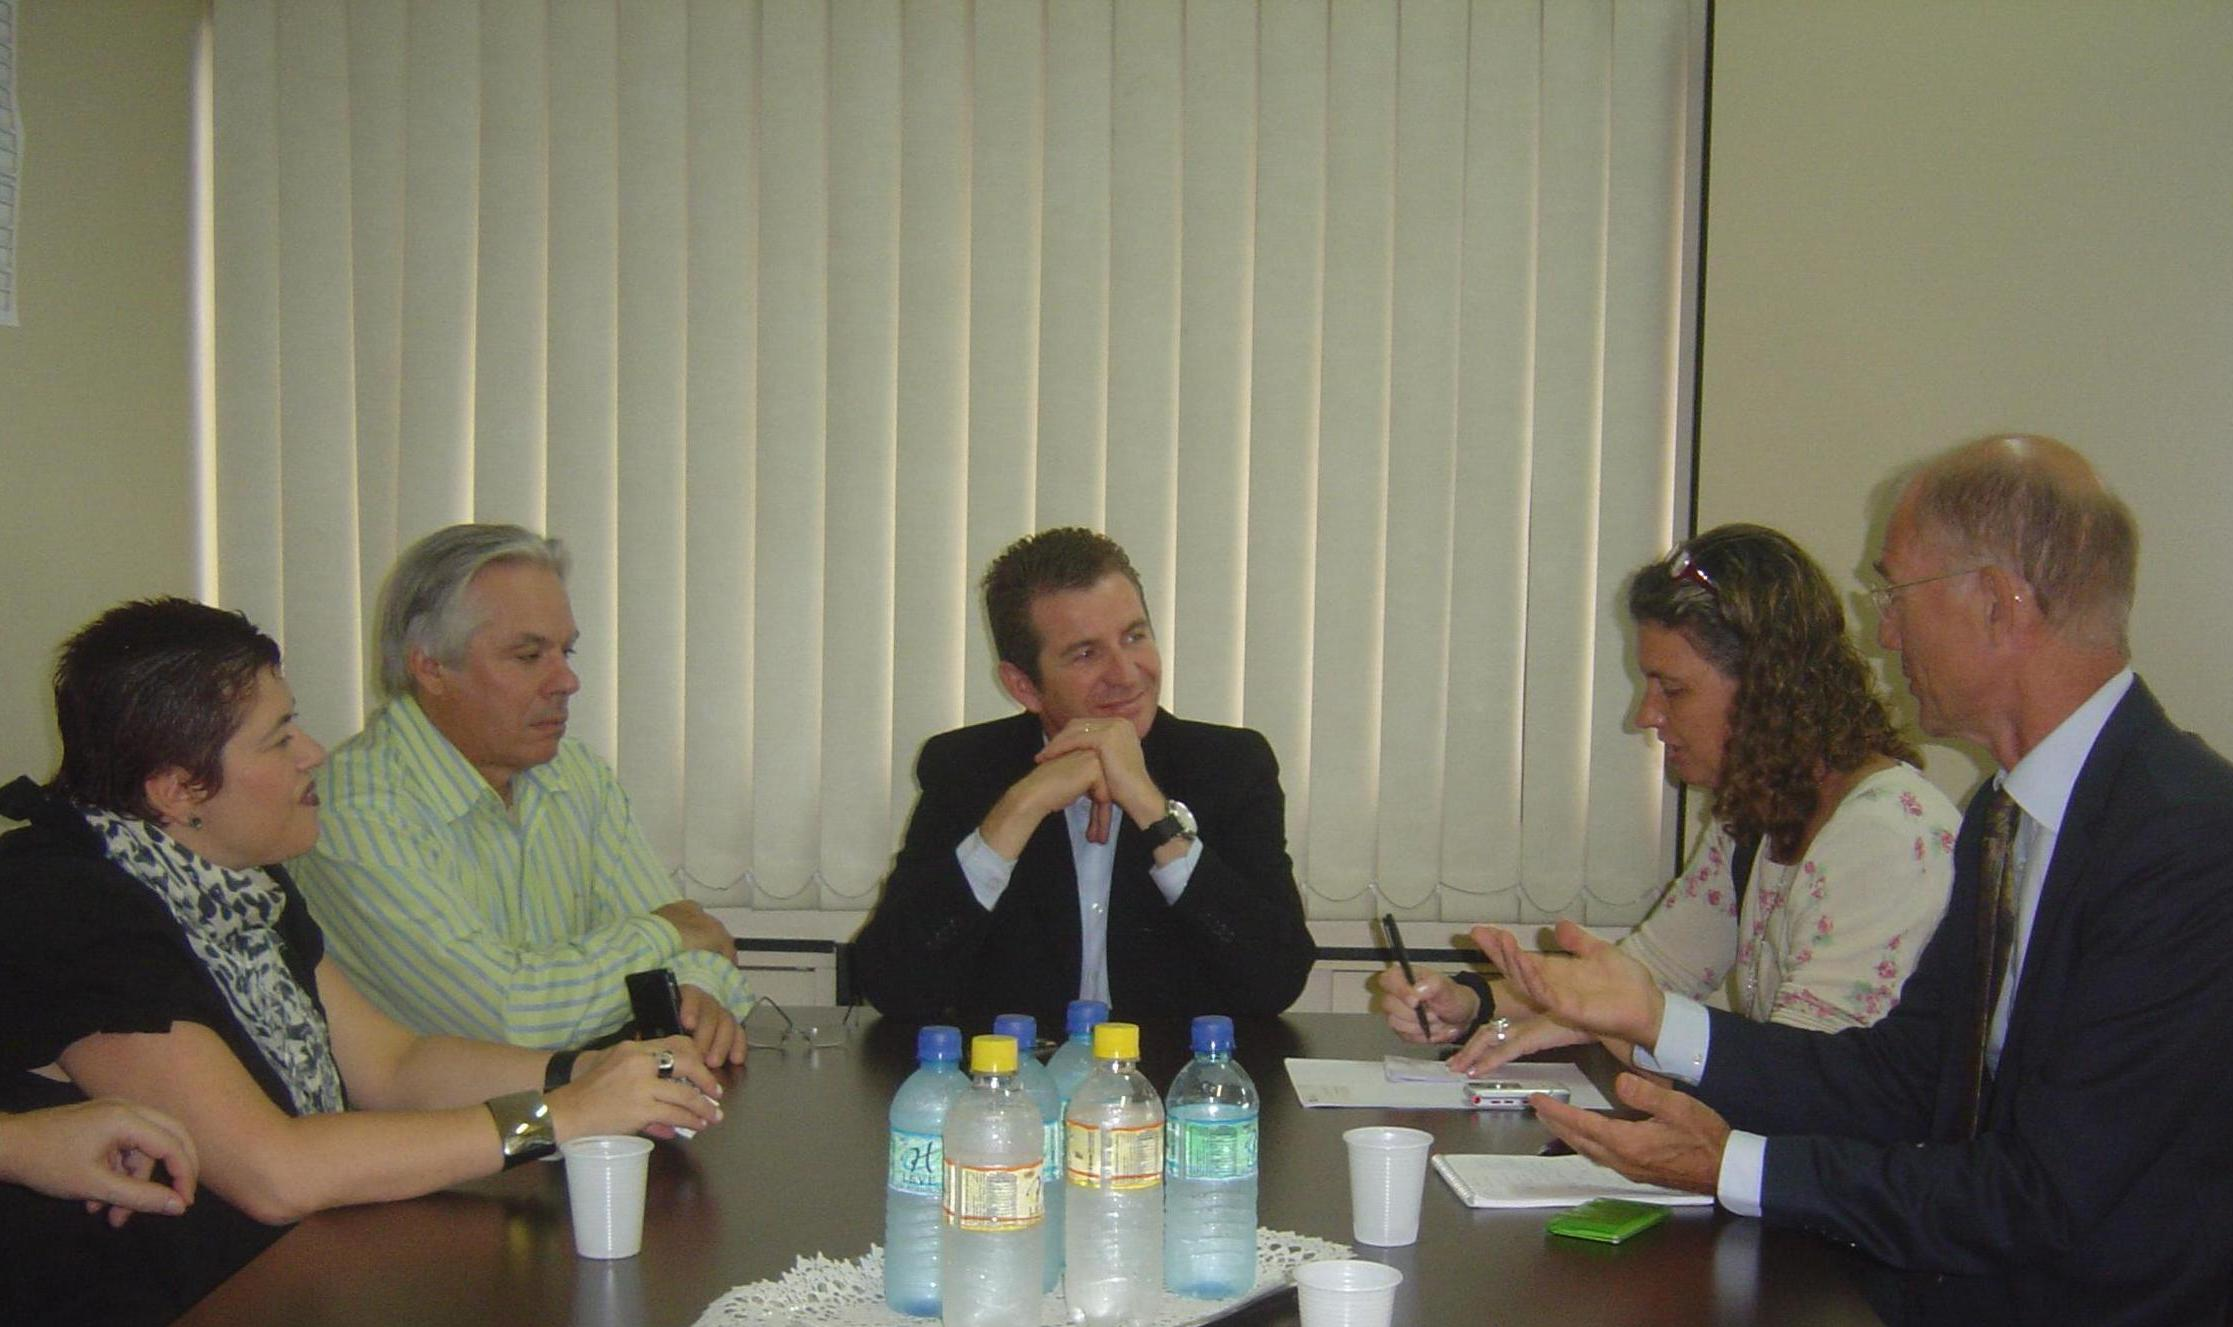 Roelof Wittink in a meeting with the former mayor of Florianópolis. Roelof Wittink numa reunião com o vice-prefeito de Florianópolis. Foto/Photo: André Geraldo Soares.